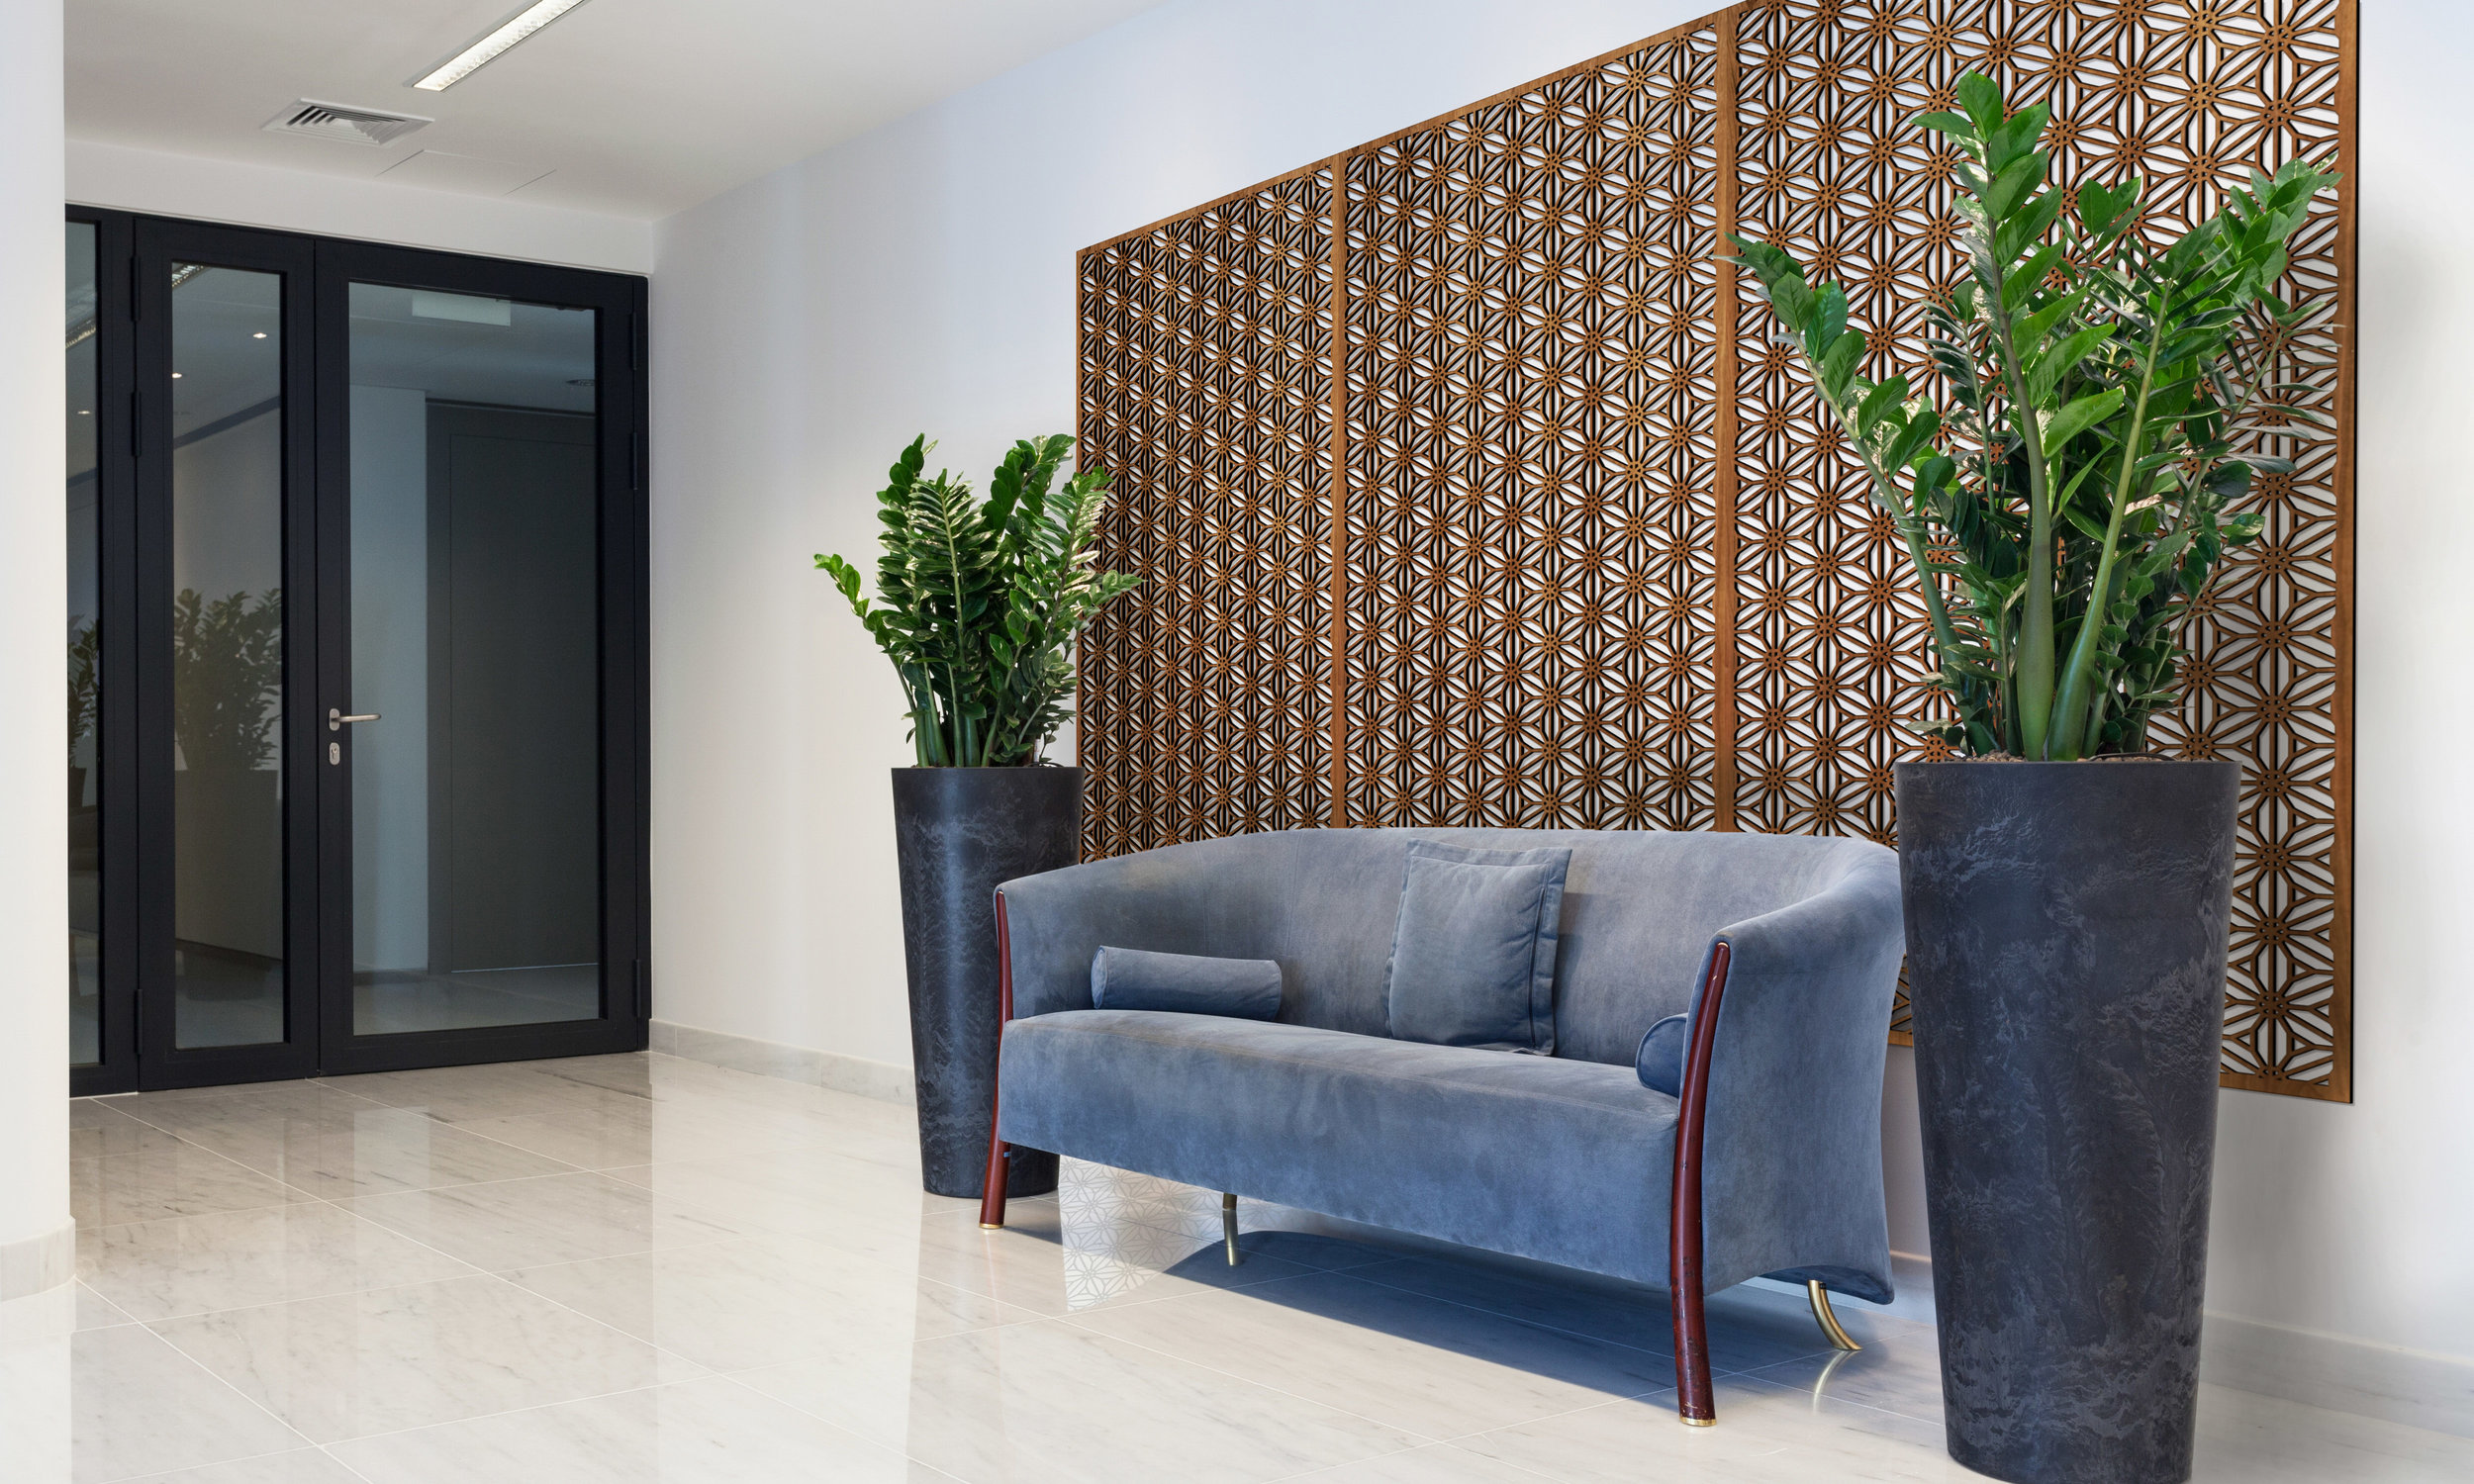 Installation Rendering A   Reverse Flower decorative office wall panel - shown in Cherry